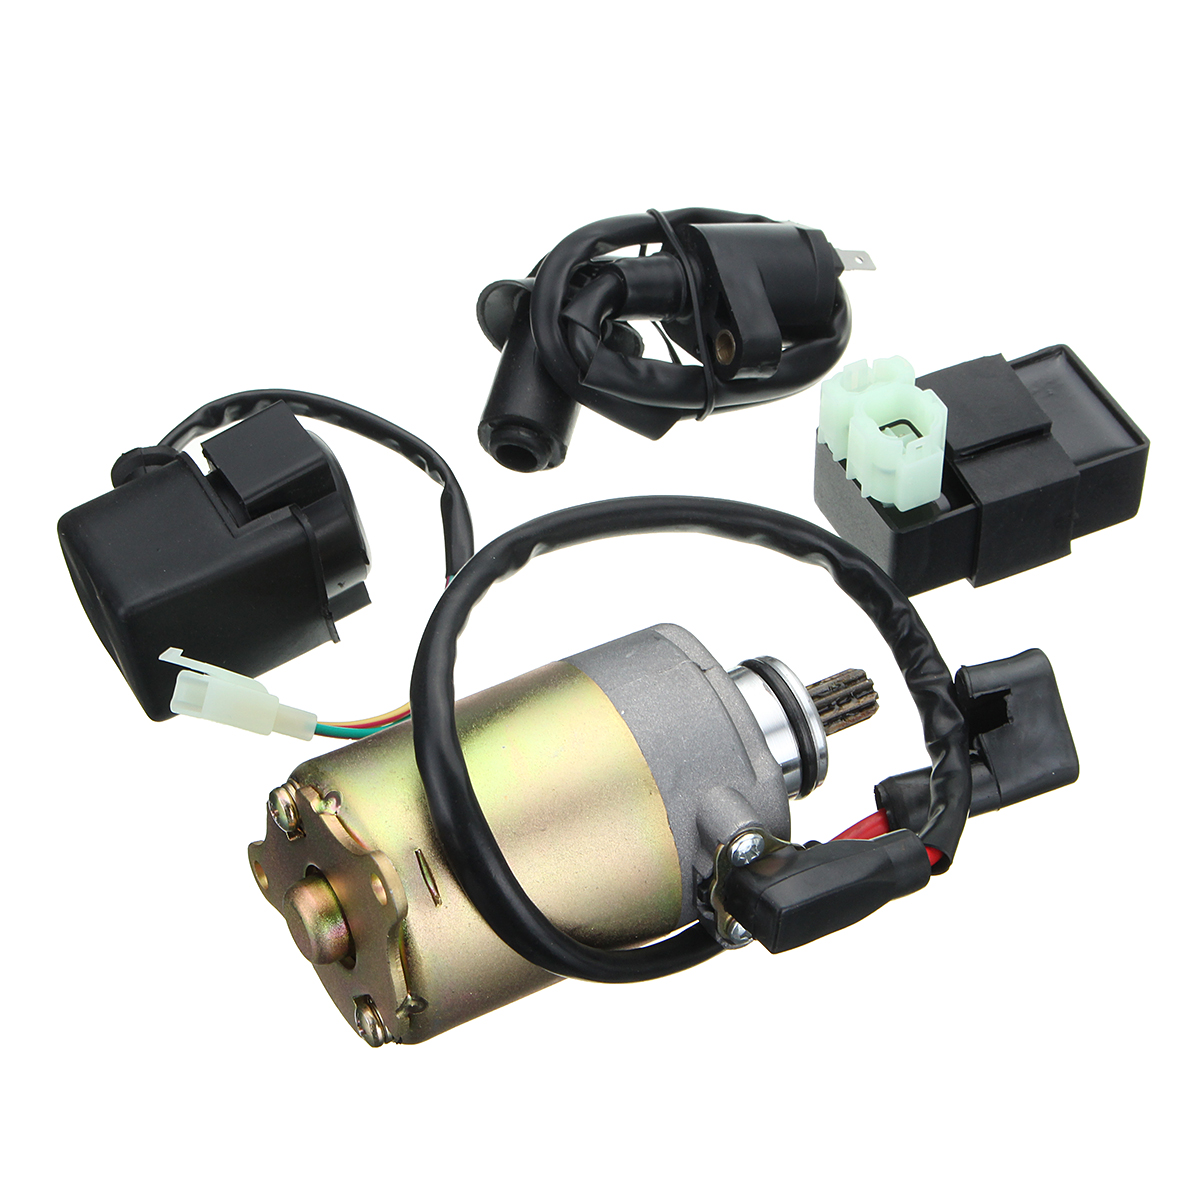 150cc Starter Motor+Ignition Coil+CDI+Relay Electrical Kit Hammerhead Twister For Golf Cart